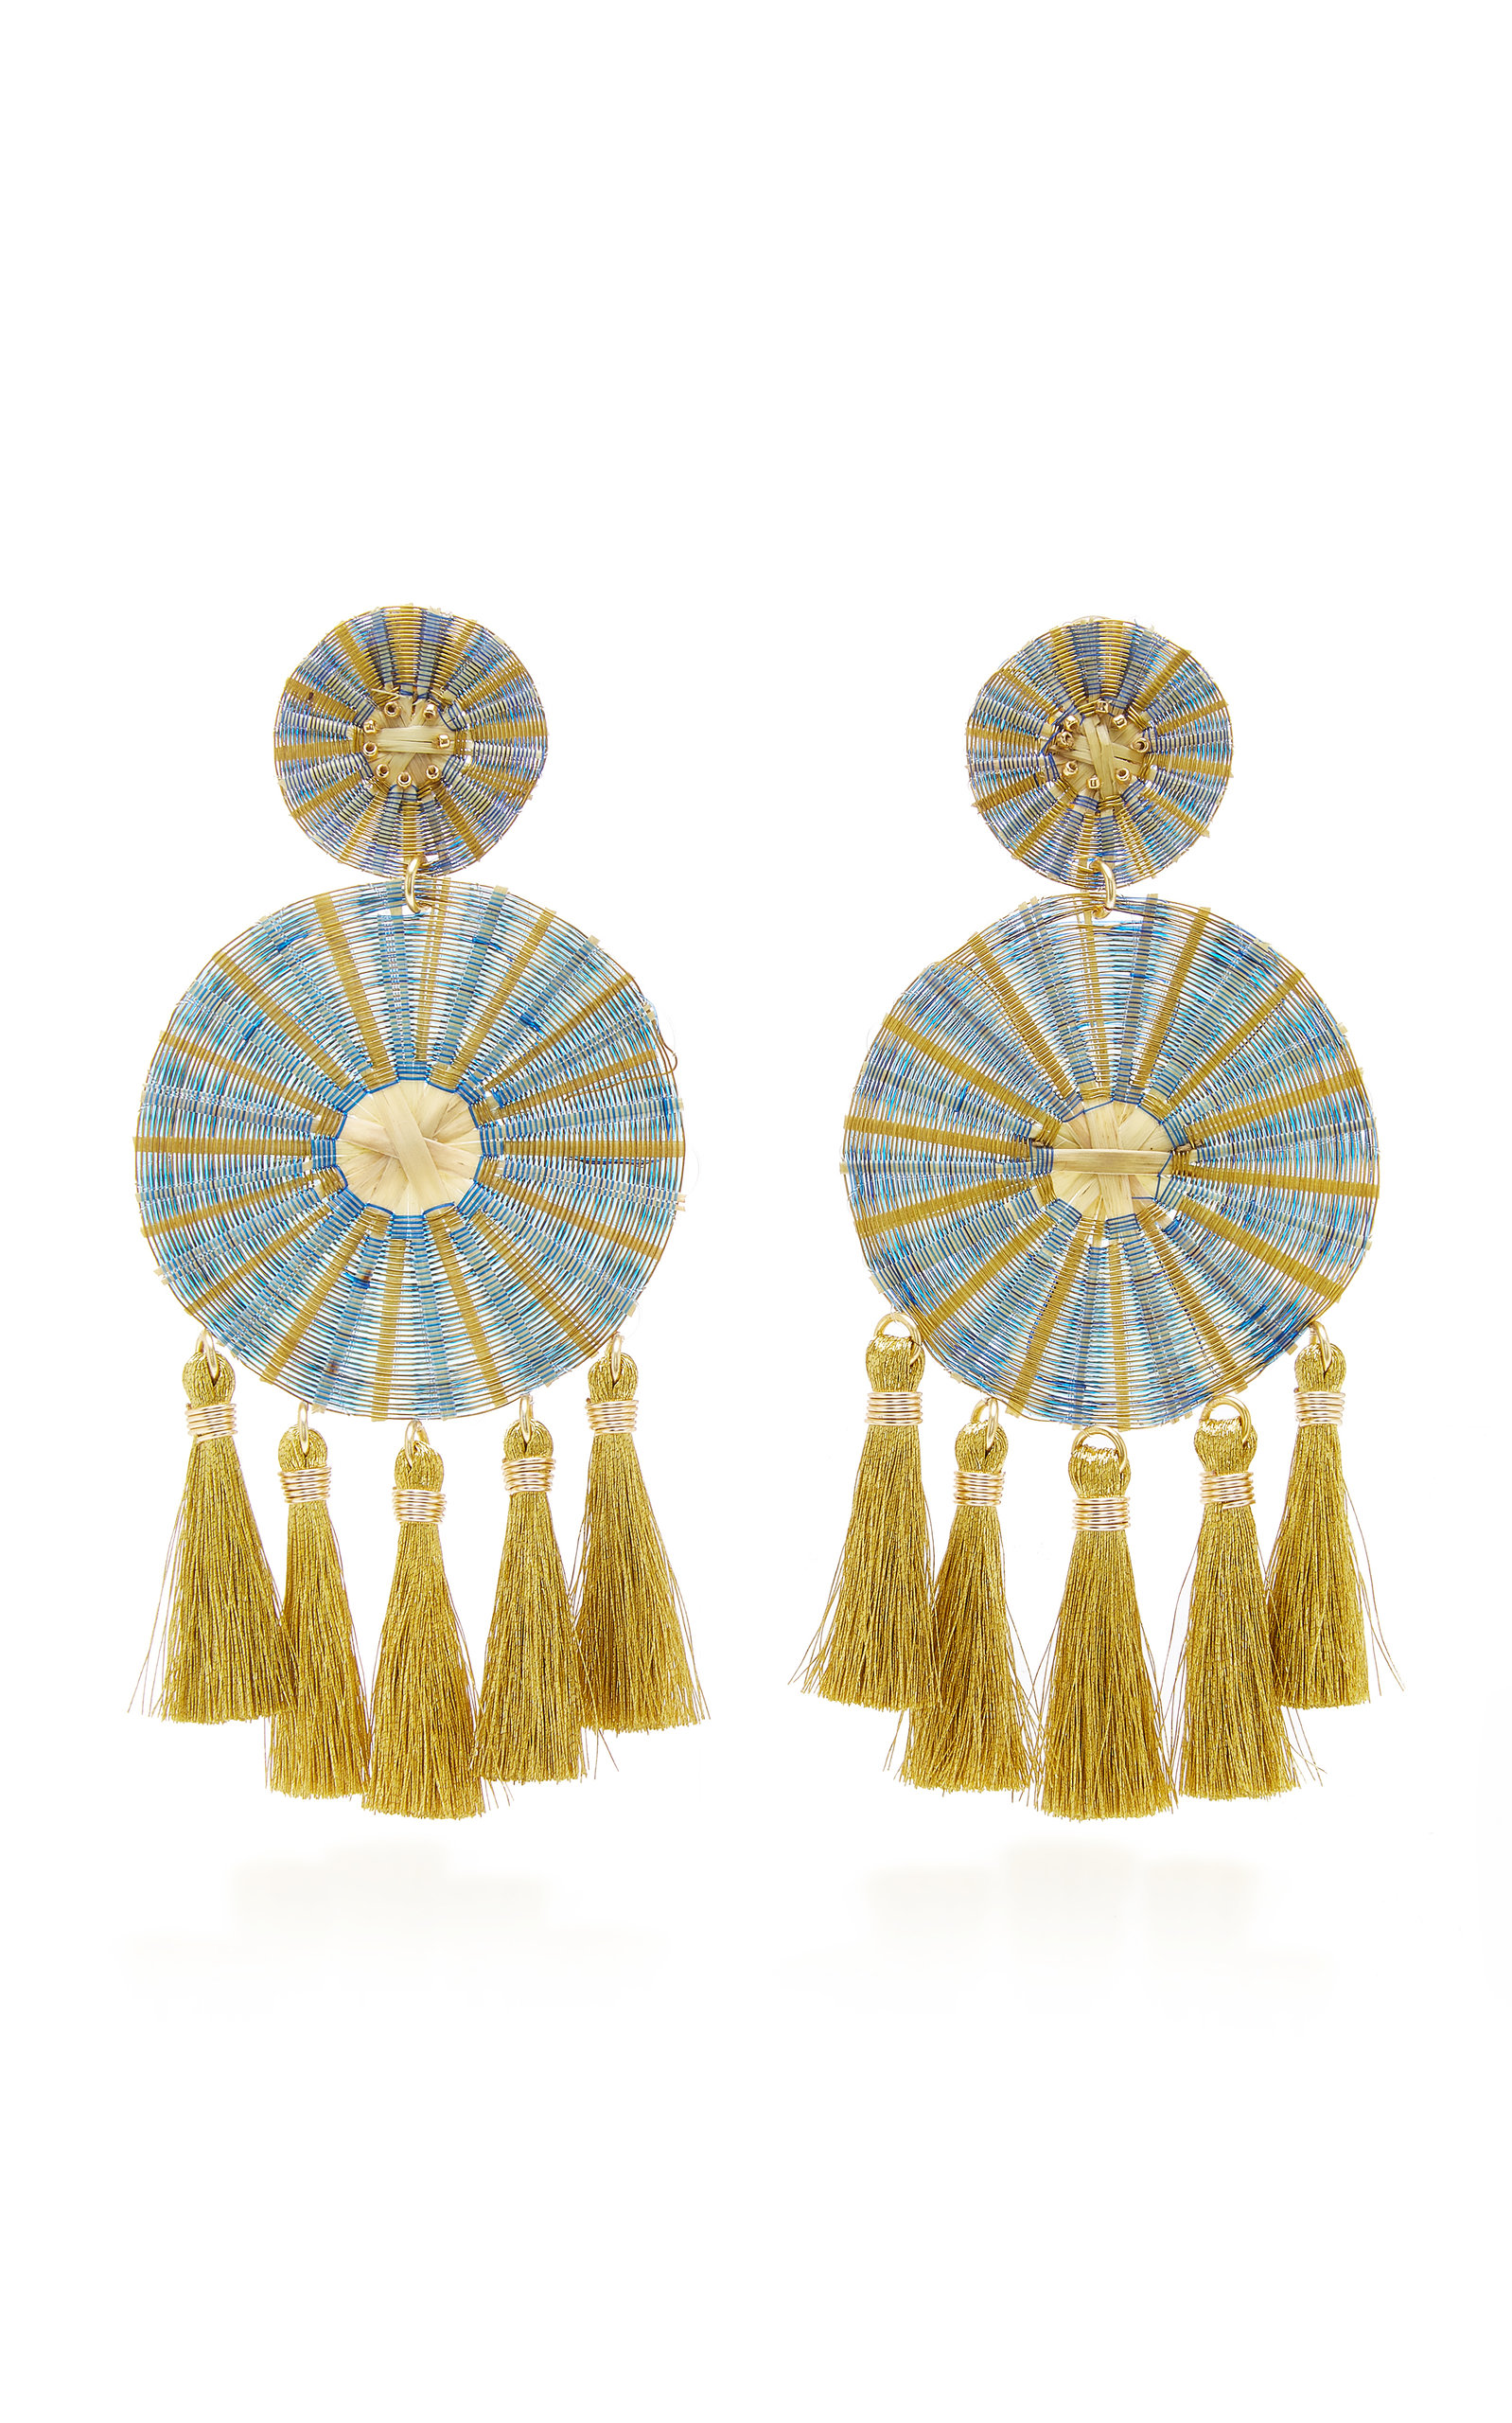 MERCEDES SALAZAR YUI TASSELED GOLD-PLATED EARRINGS